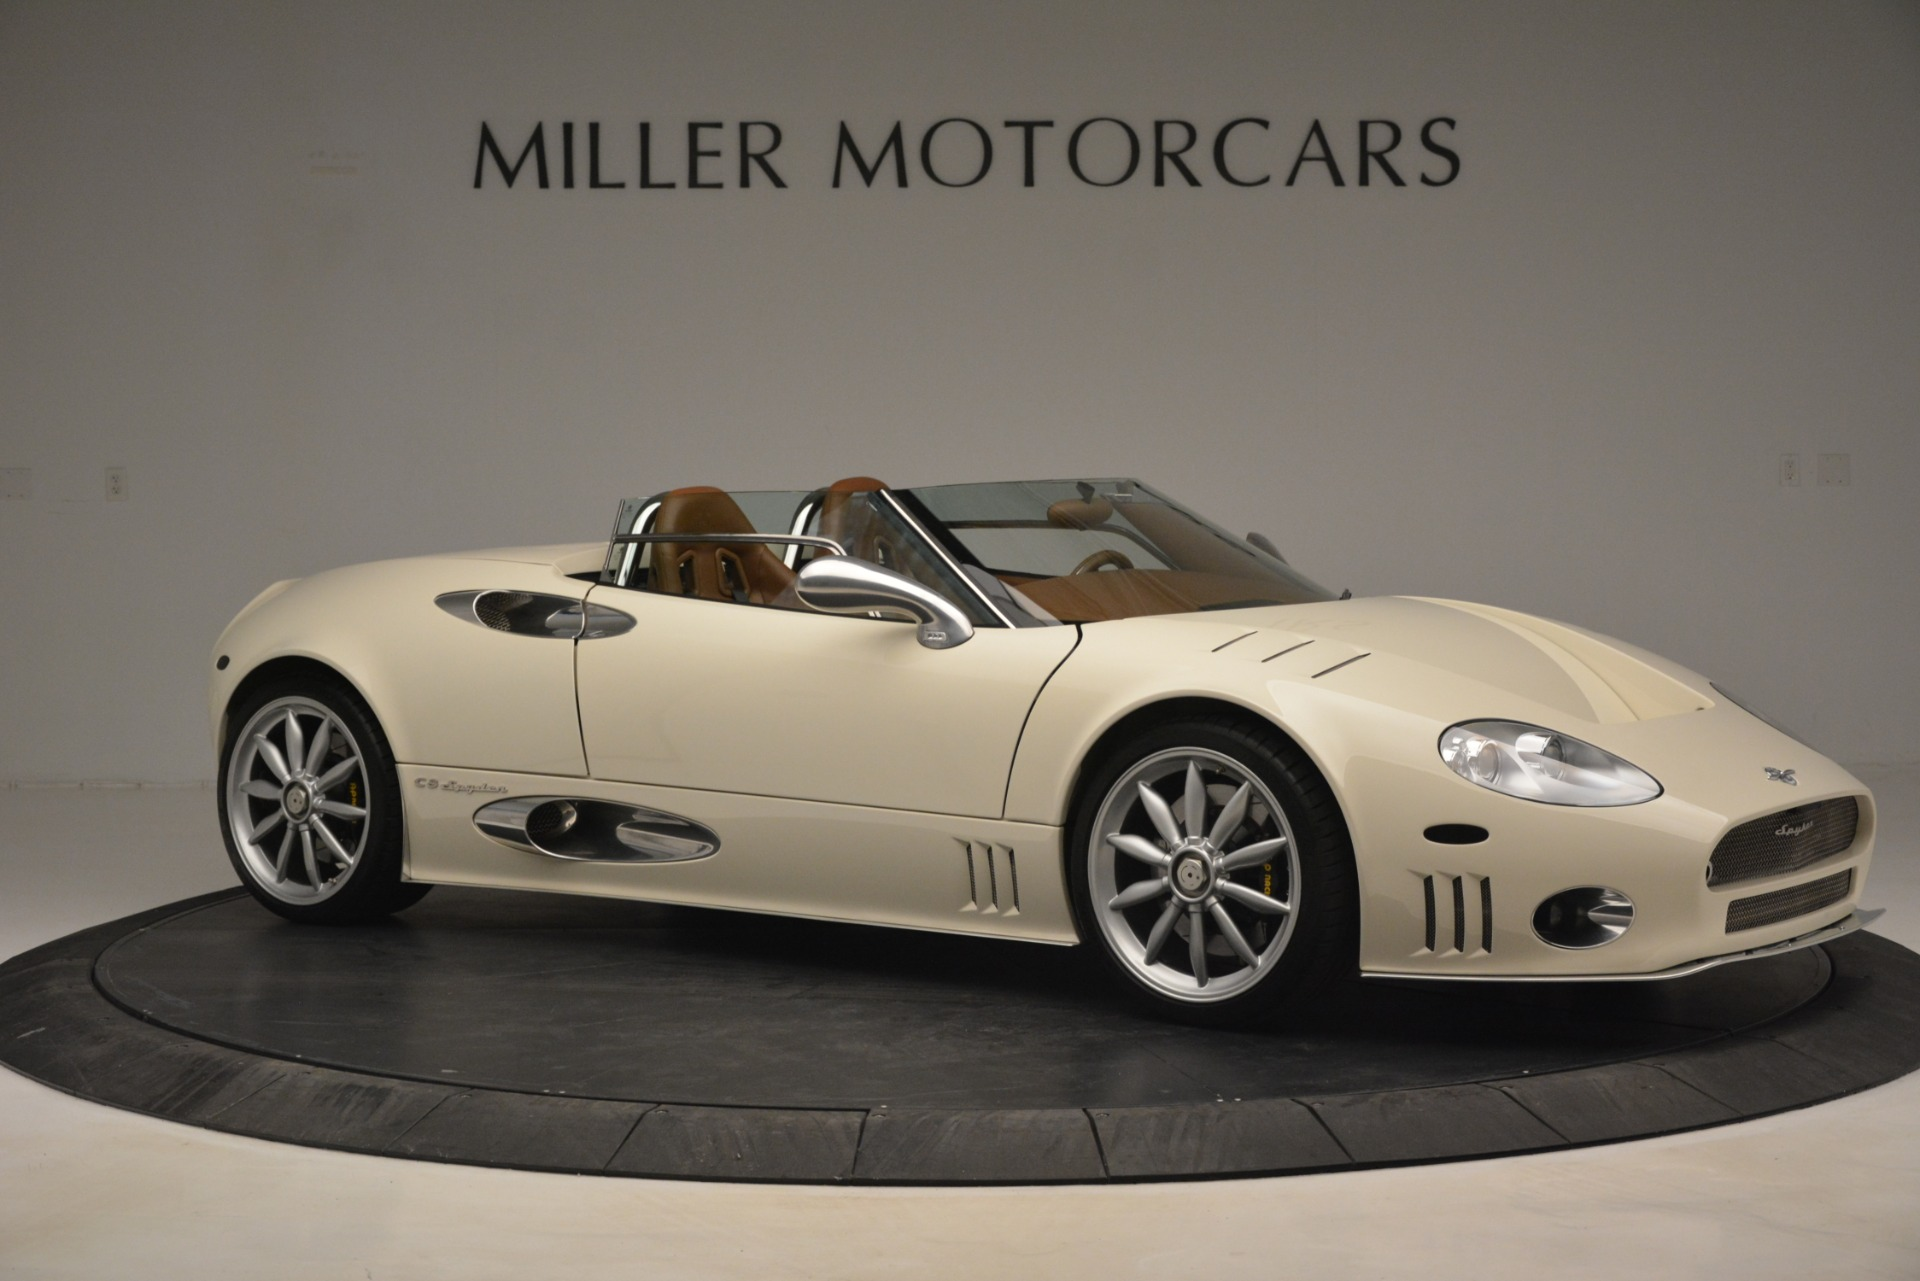 Used 2006 Spyker C8 Spyder  For Sale In Greenwich, CT. Alfa Romeo of Greenwich, 7463 1661_p10